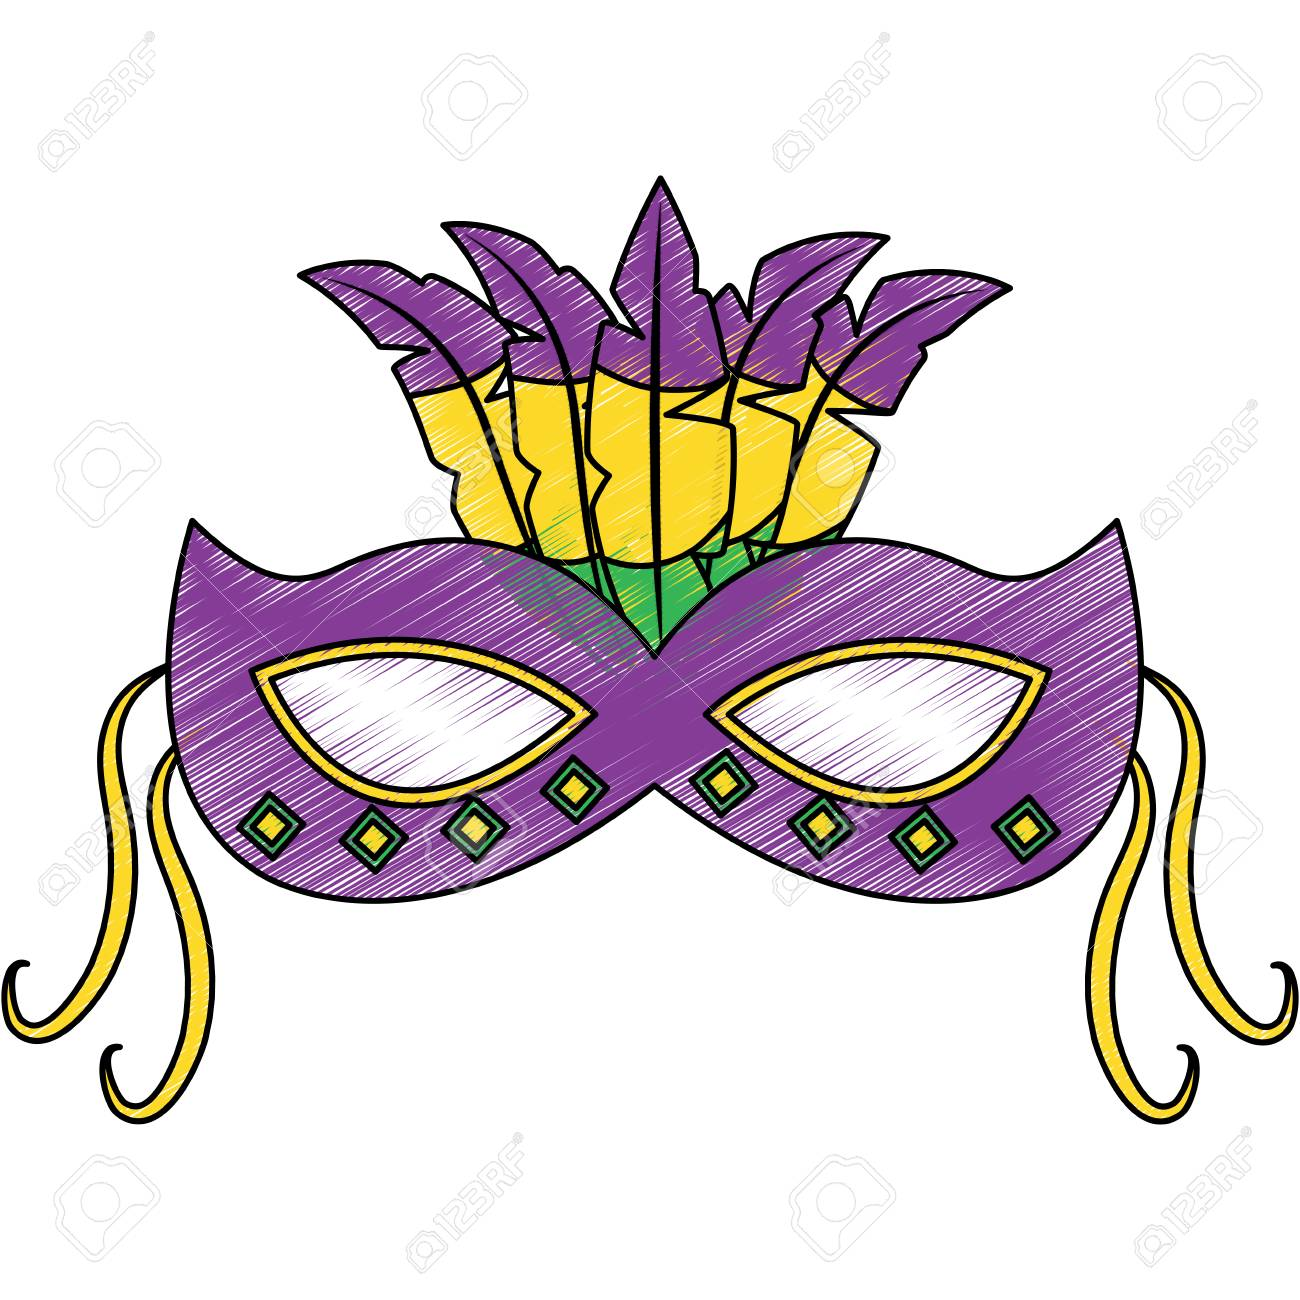 ornate mardi gras carnival mask with feathers festival vector rh 123rf com mardi gras vector background mardi gras vector background